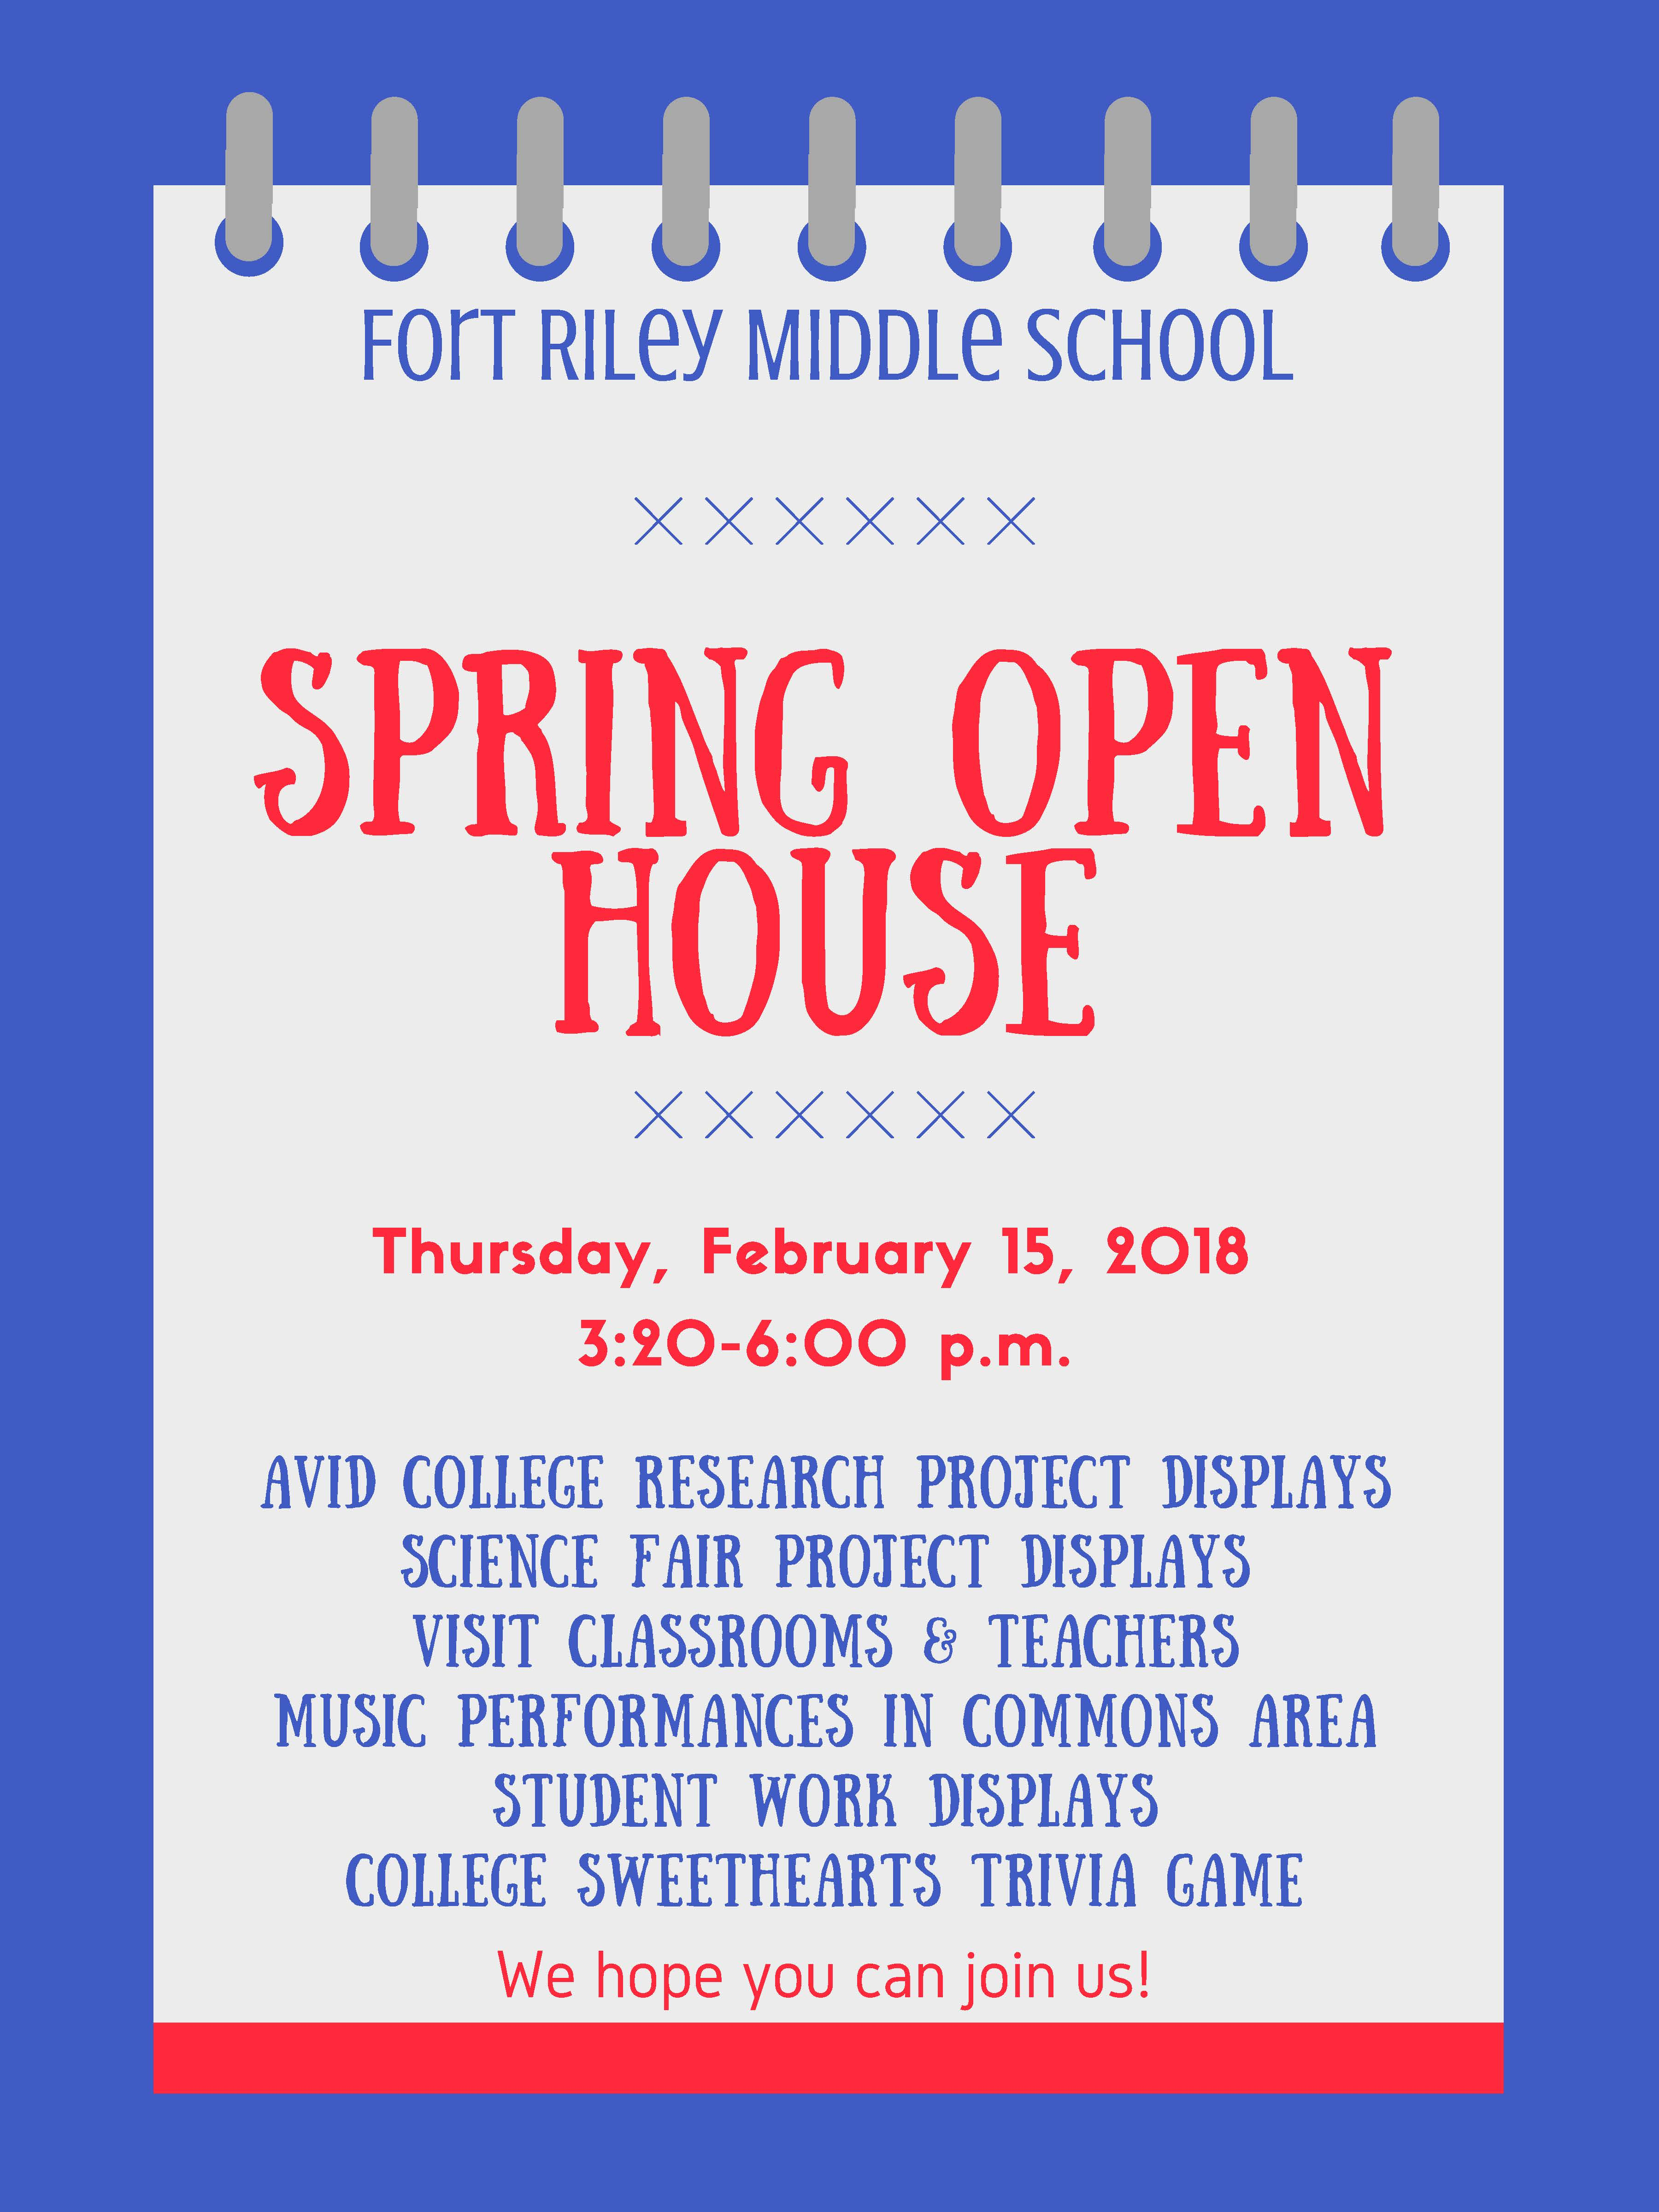 FRMS Open House Flyer